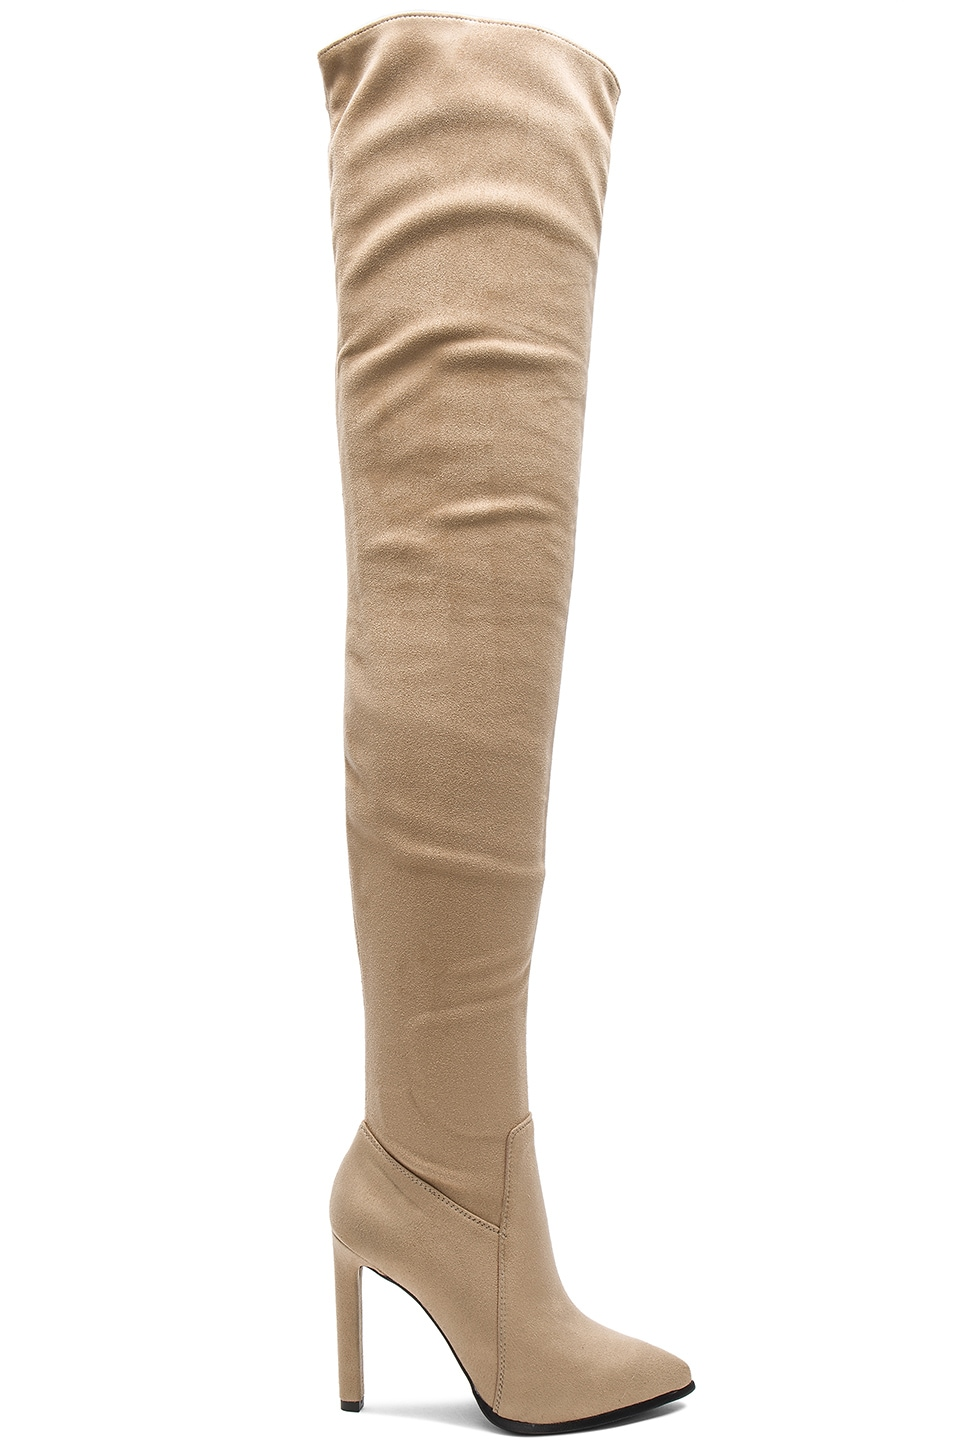 Jeffrey Campbell Sherise Boots in Beige Suede